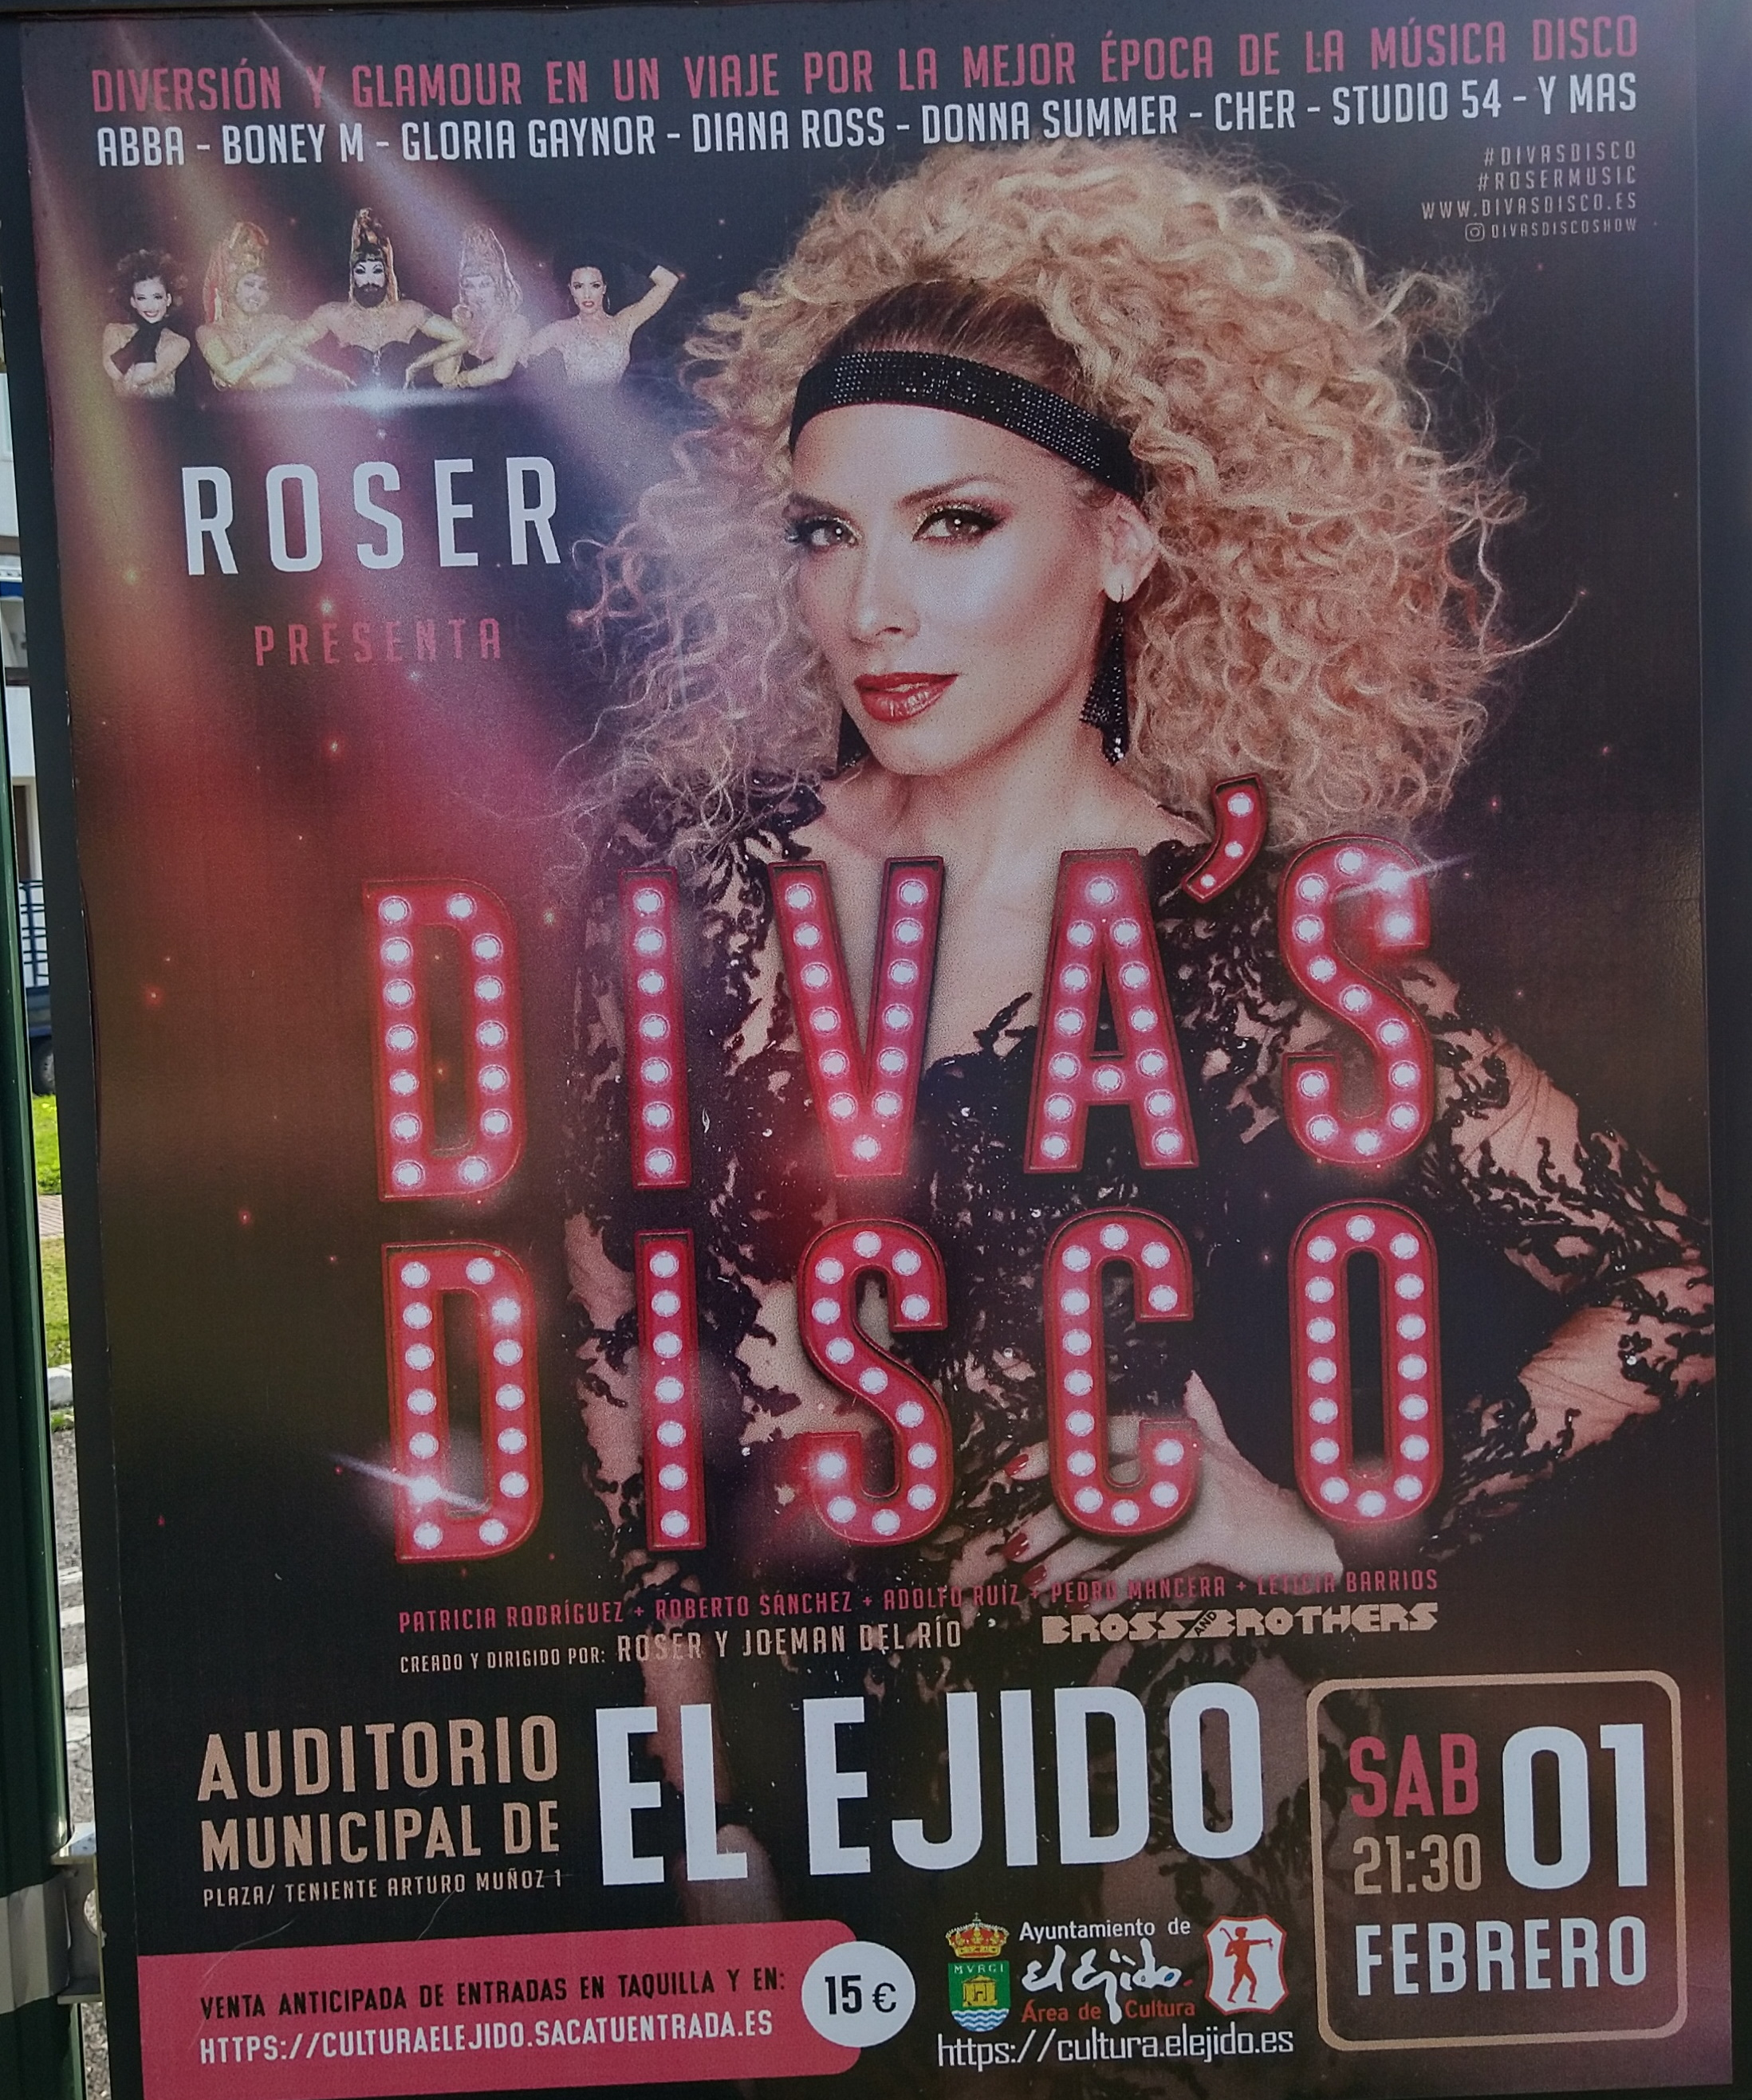 Disco Show El Ejido - 1 Feb 20